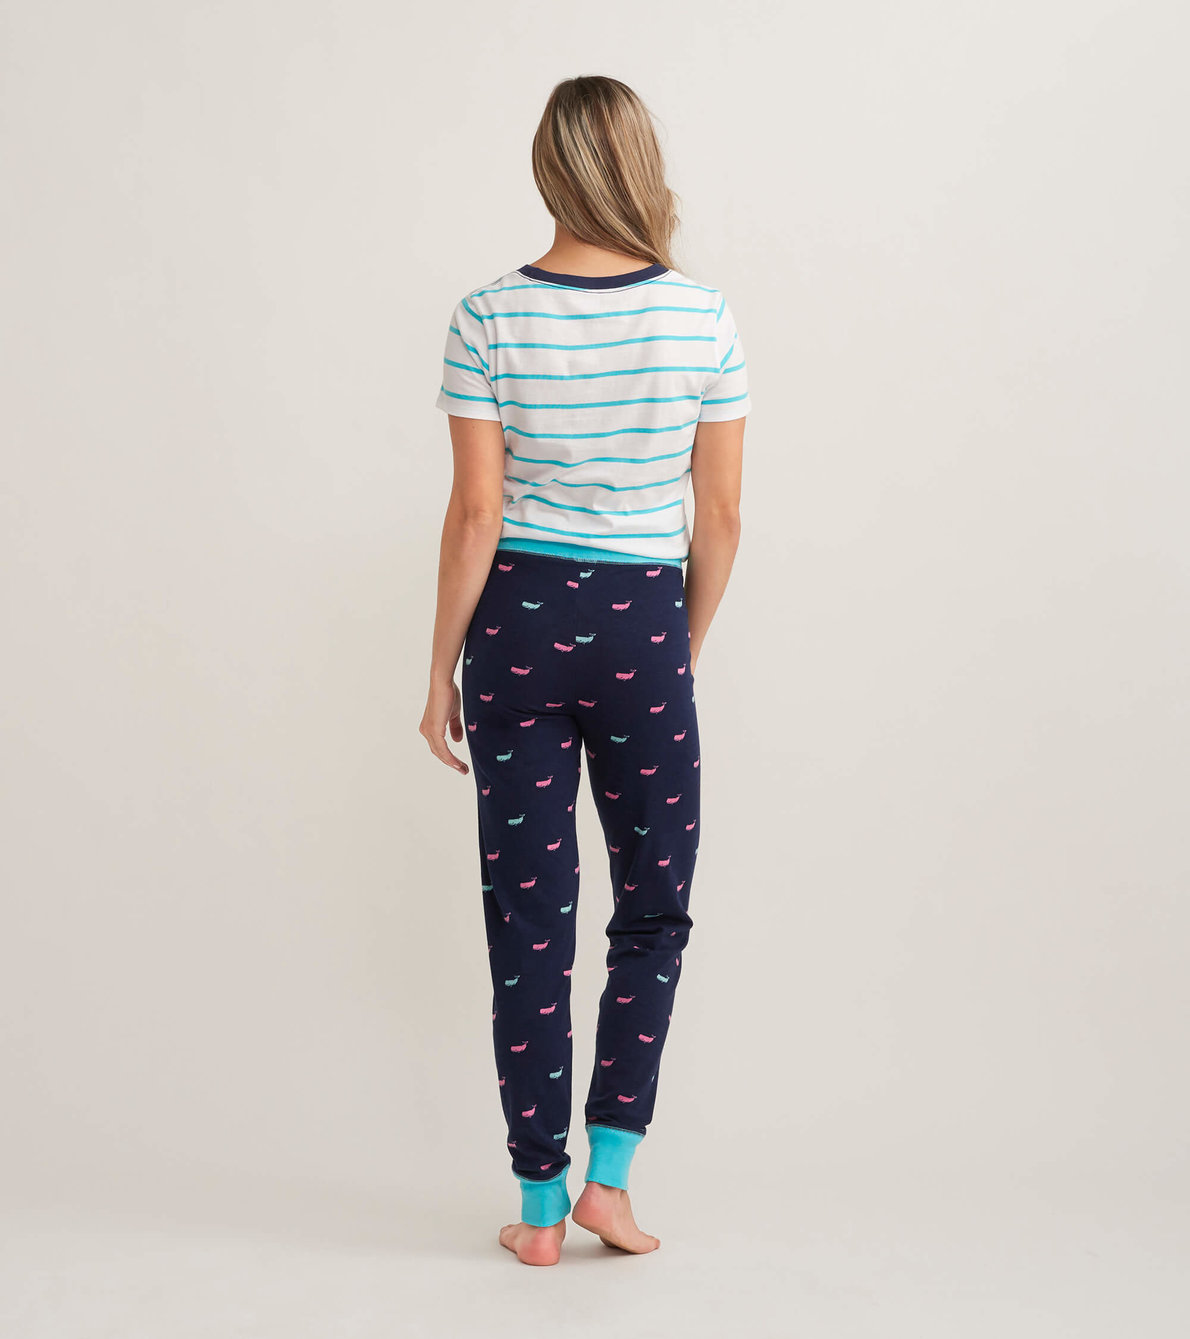 View larger image of Nautical Whales Women's Tee and Leggings Pajama Separates